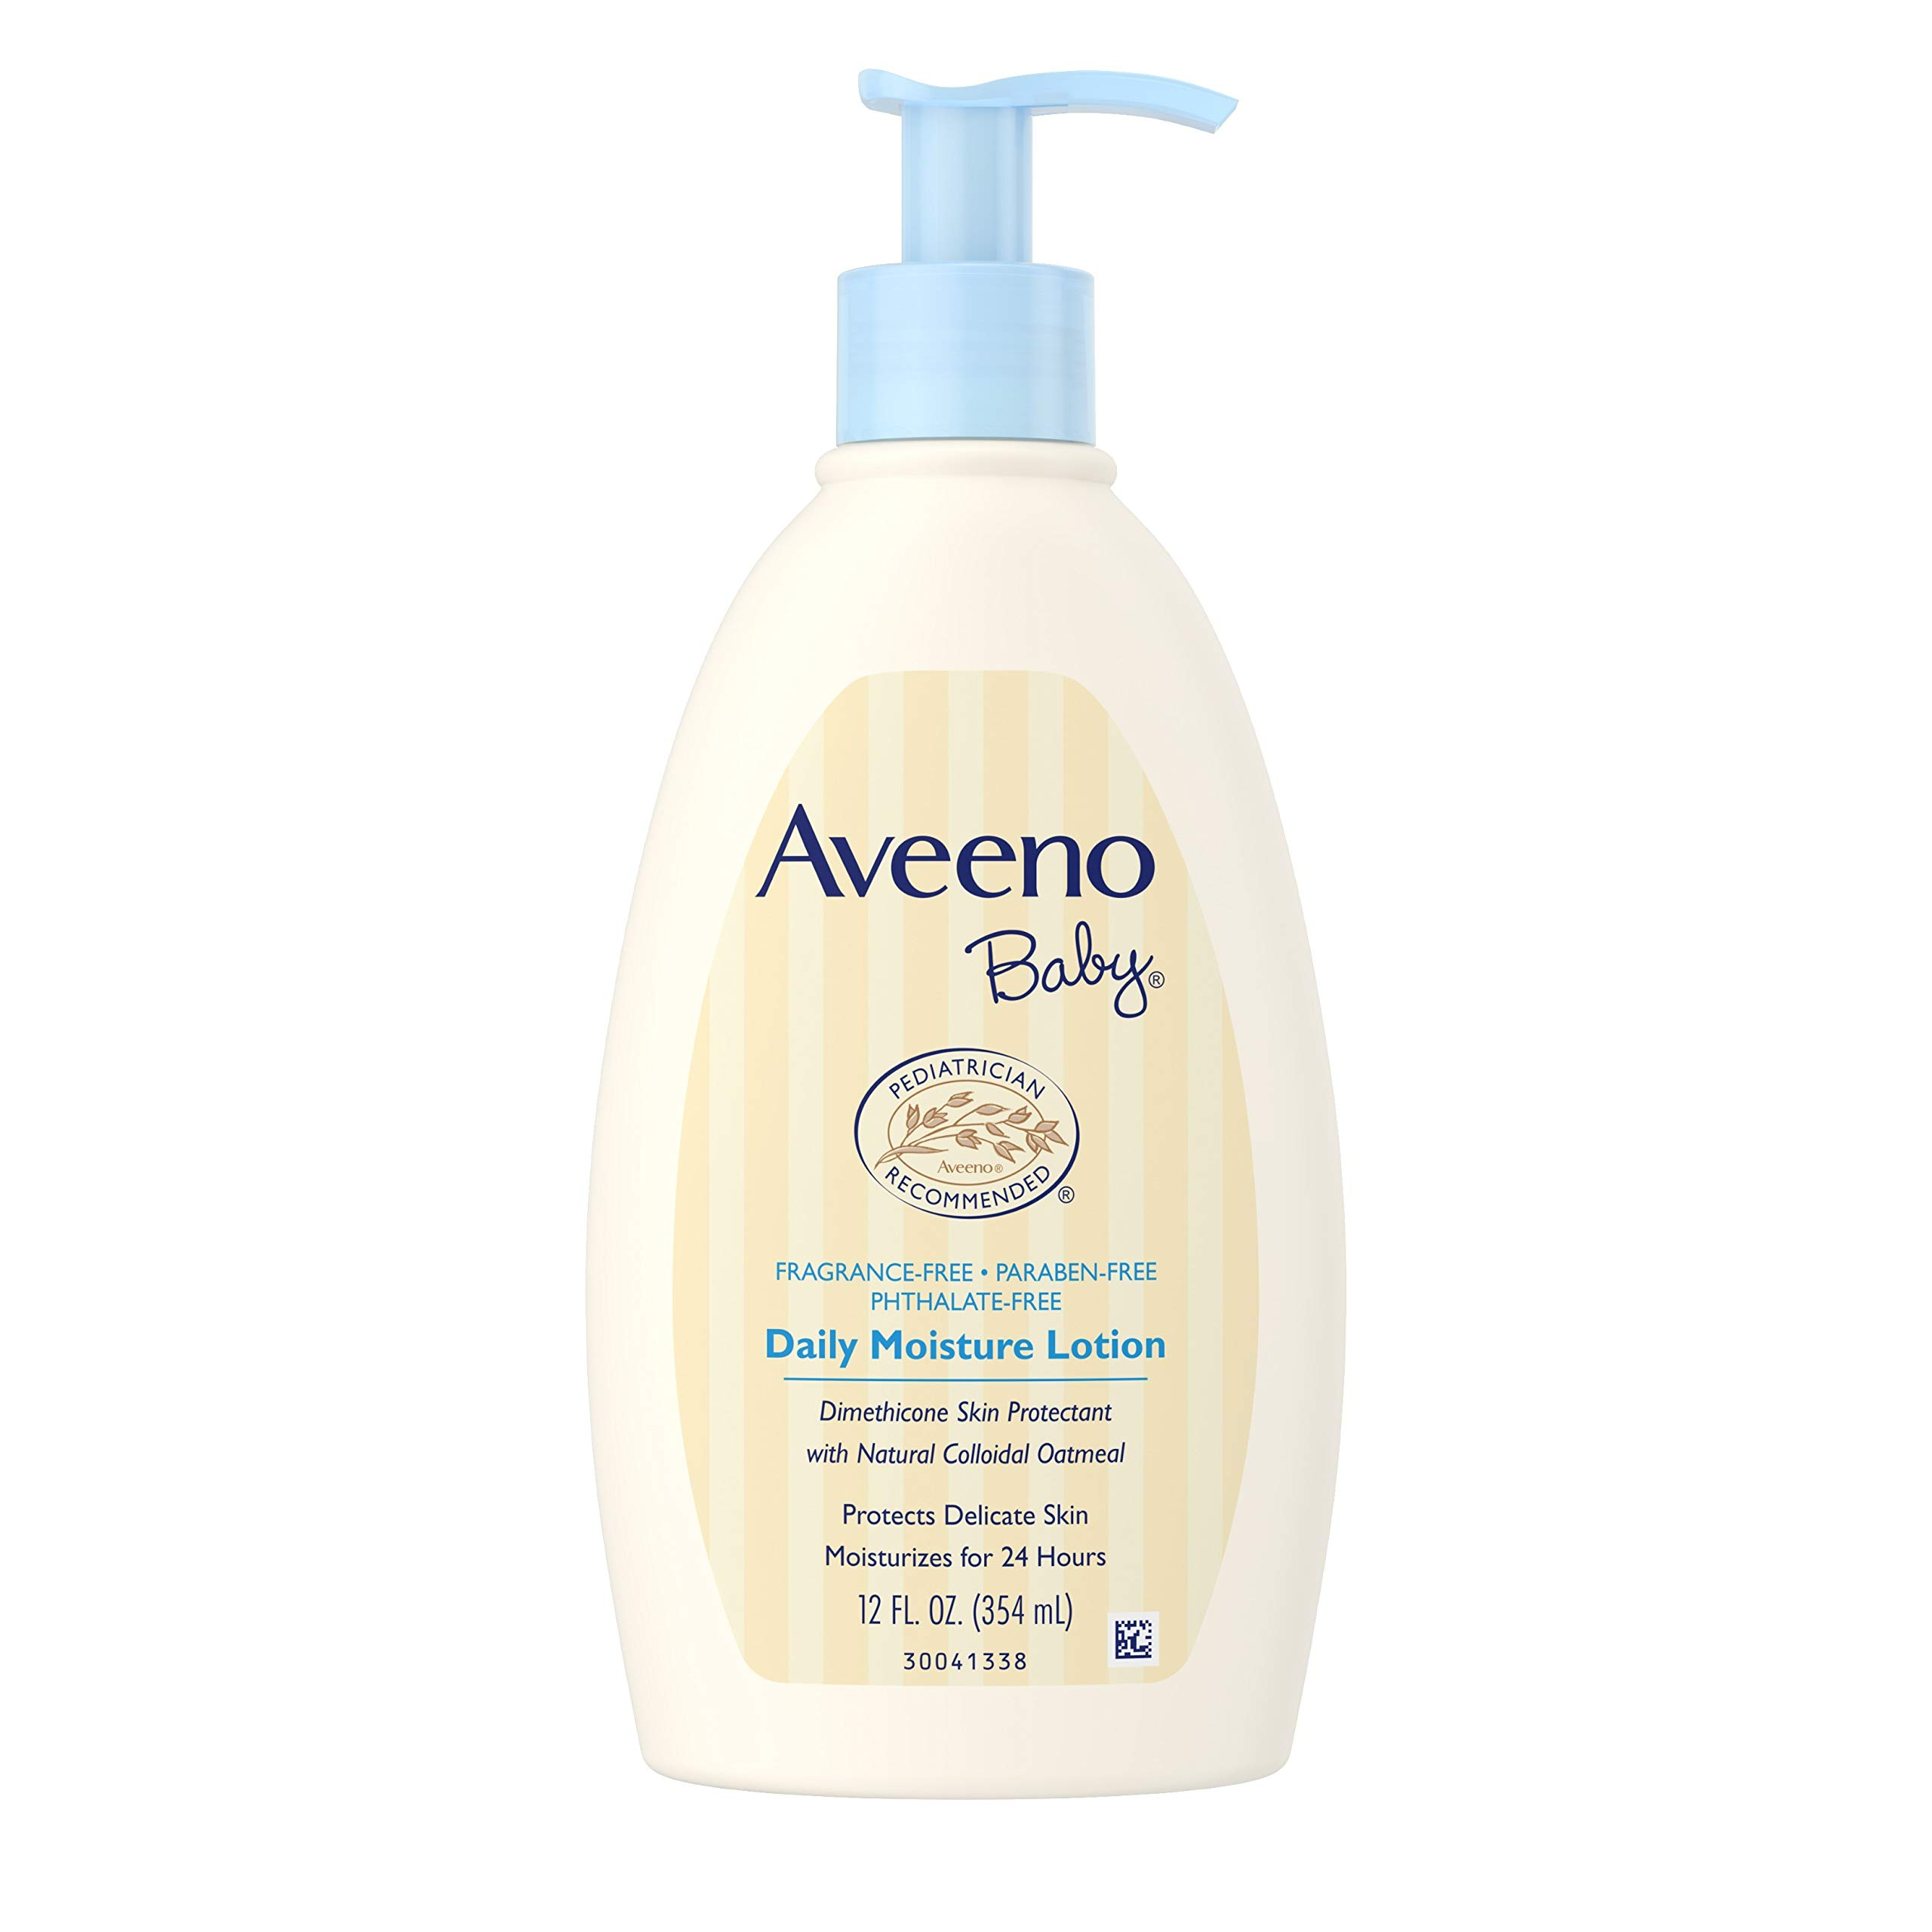 Aveeno Baby Daily Moisture Lotion with Natural Colloidal Oatmeal & Dimethicone, Fragrance-Free, 12 fl. oz (Pack of 6) by Aveeno Baby